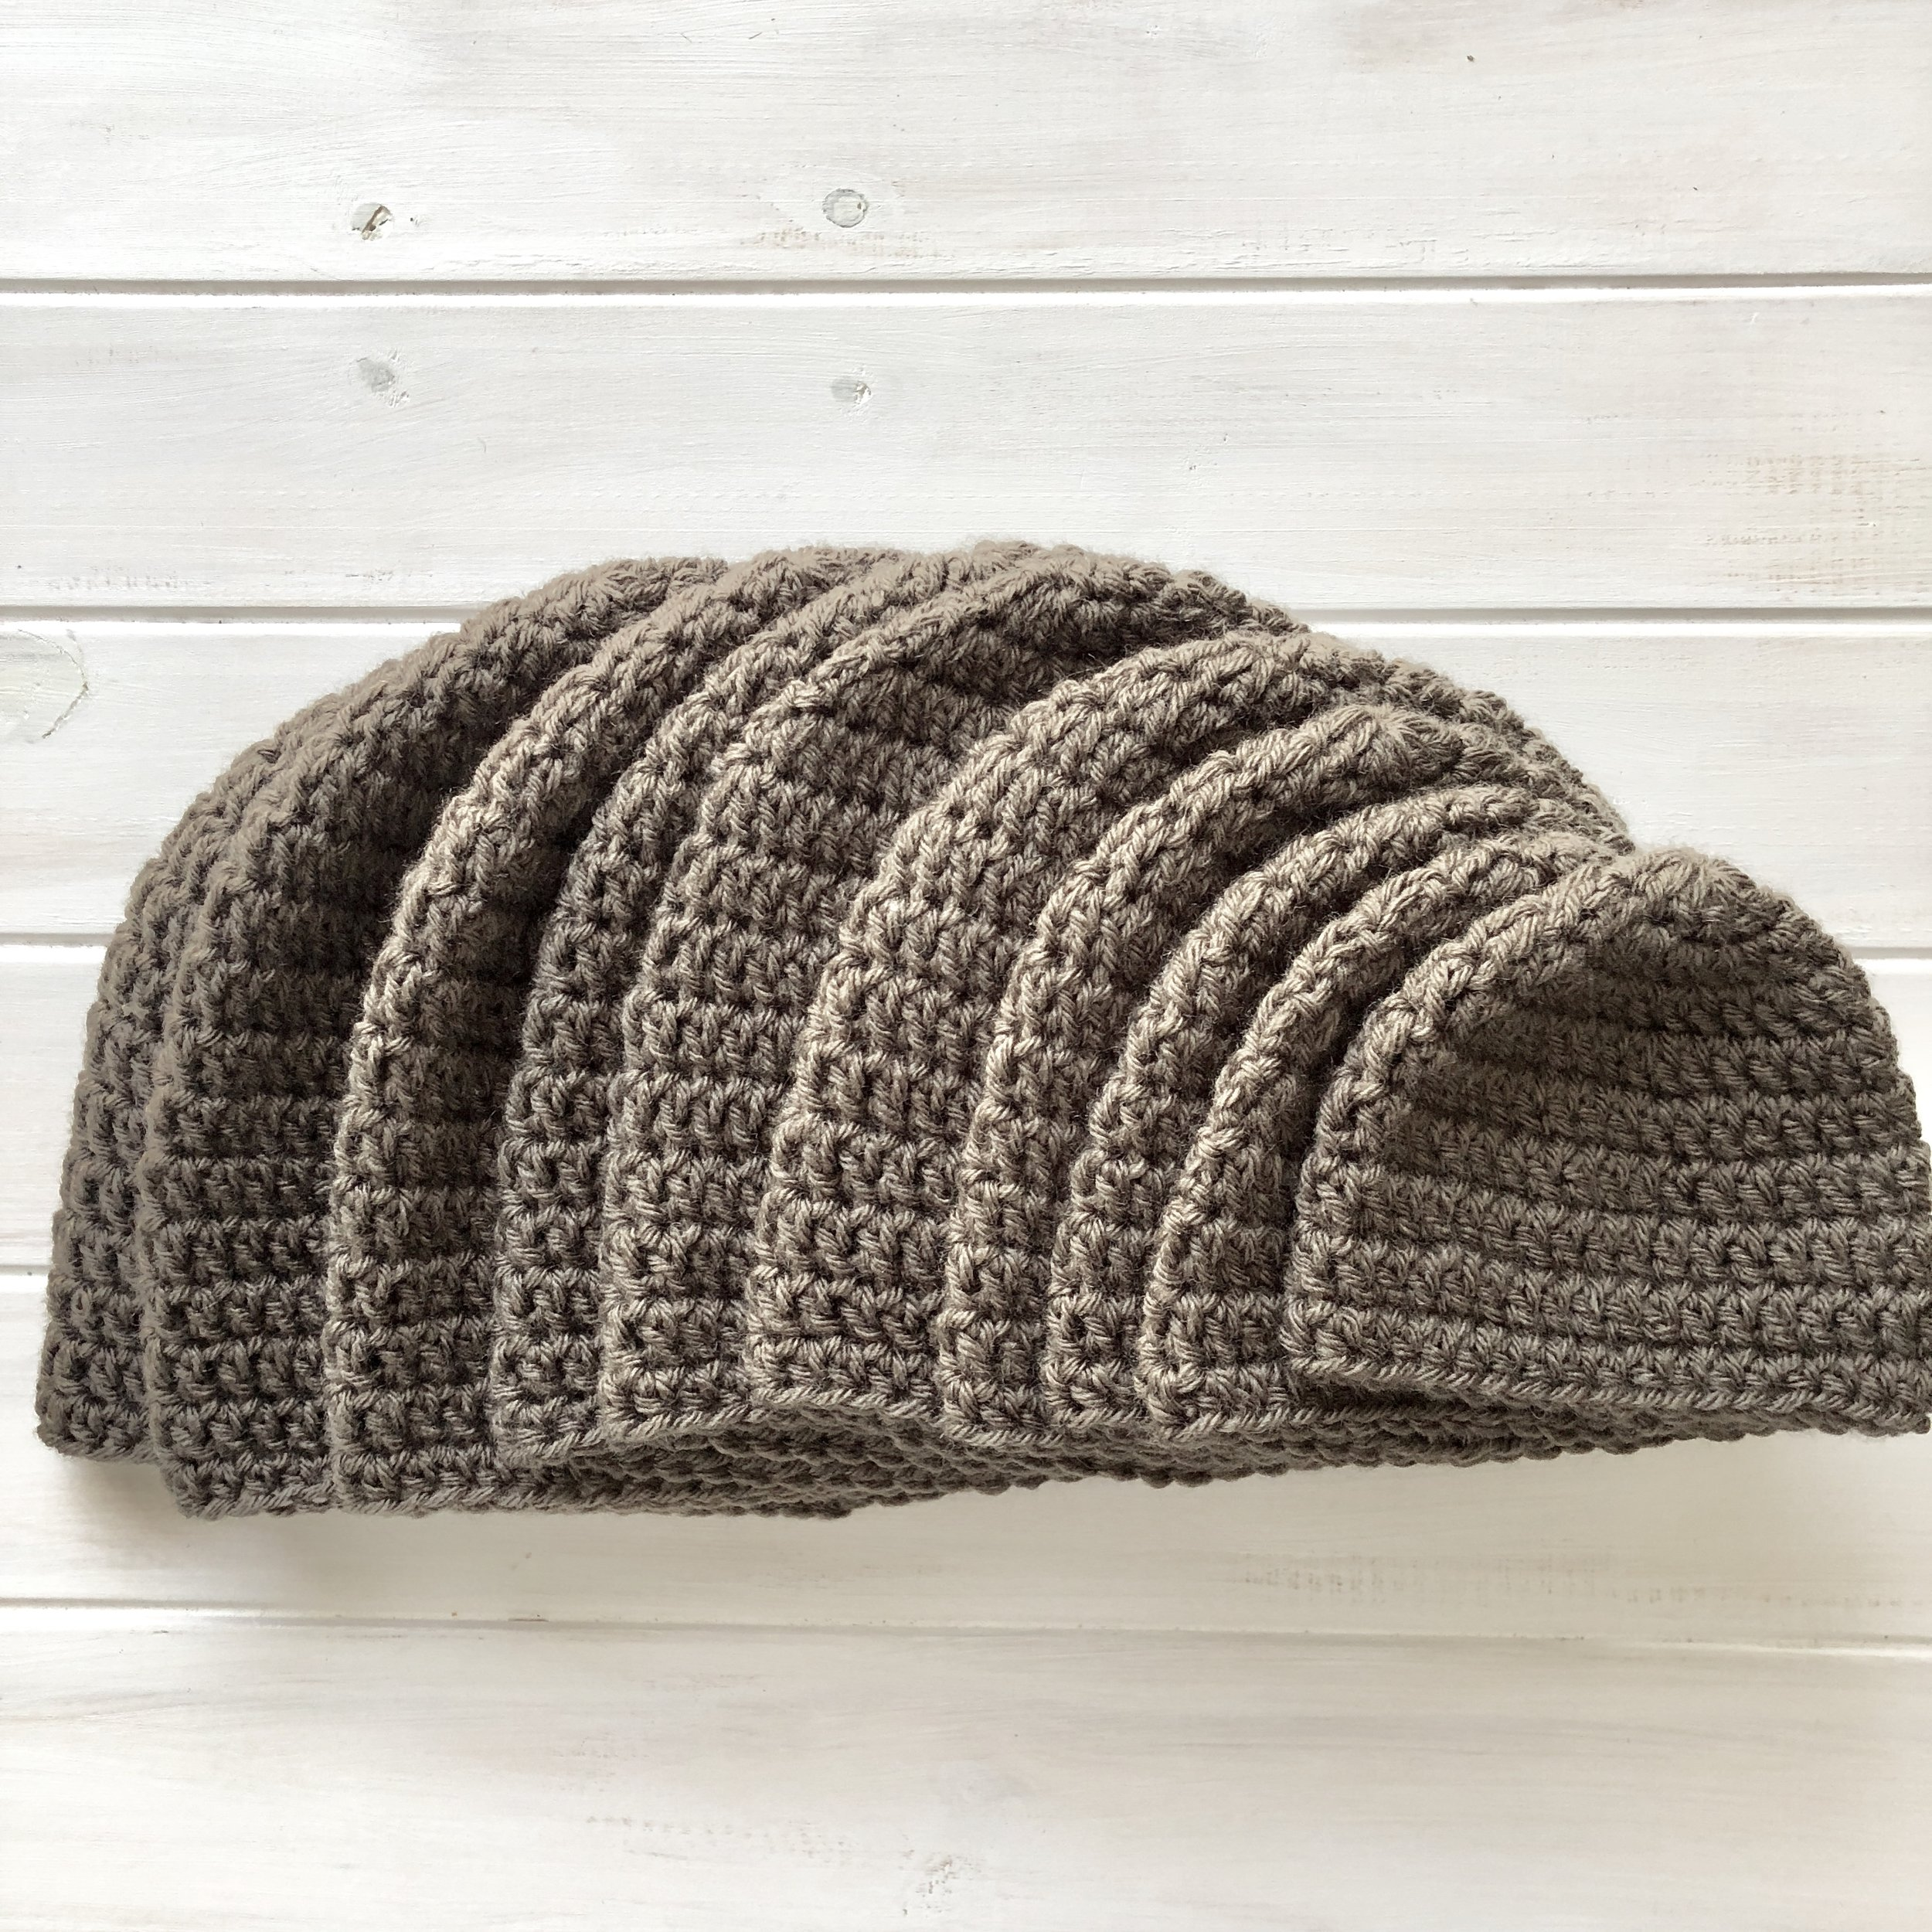 Lincoln Park Beanie - 10 Sizes - All Sizes - Crochet Pattern - The Roving Nomad